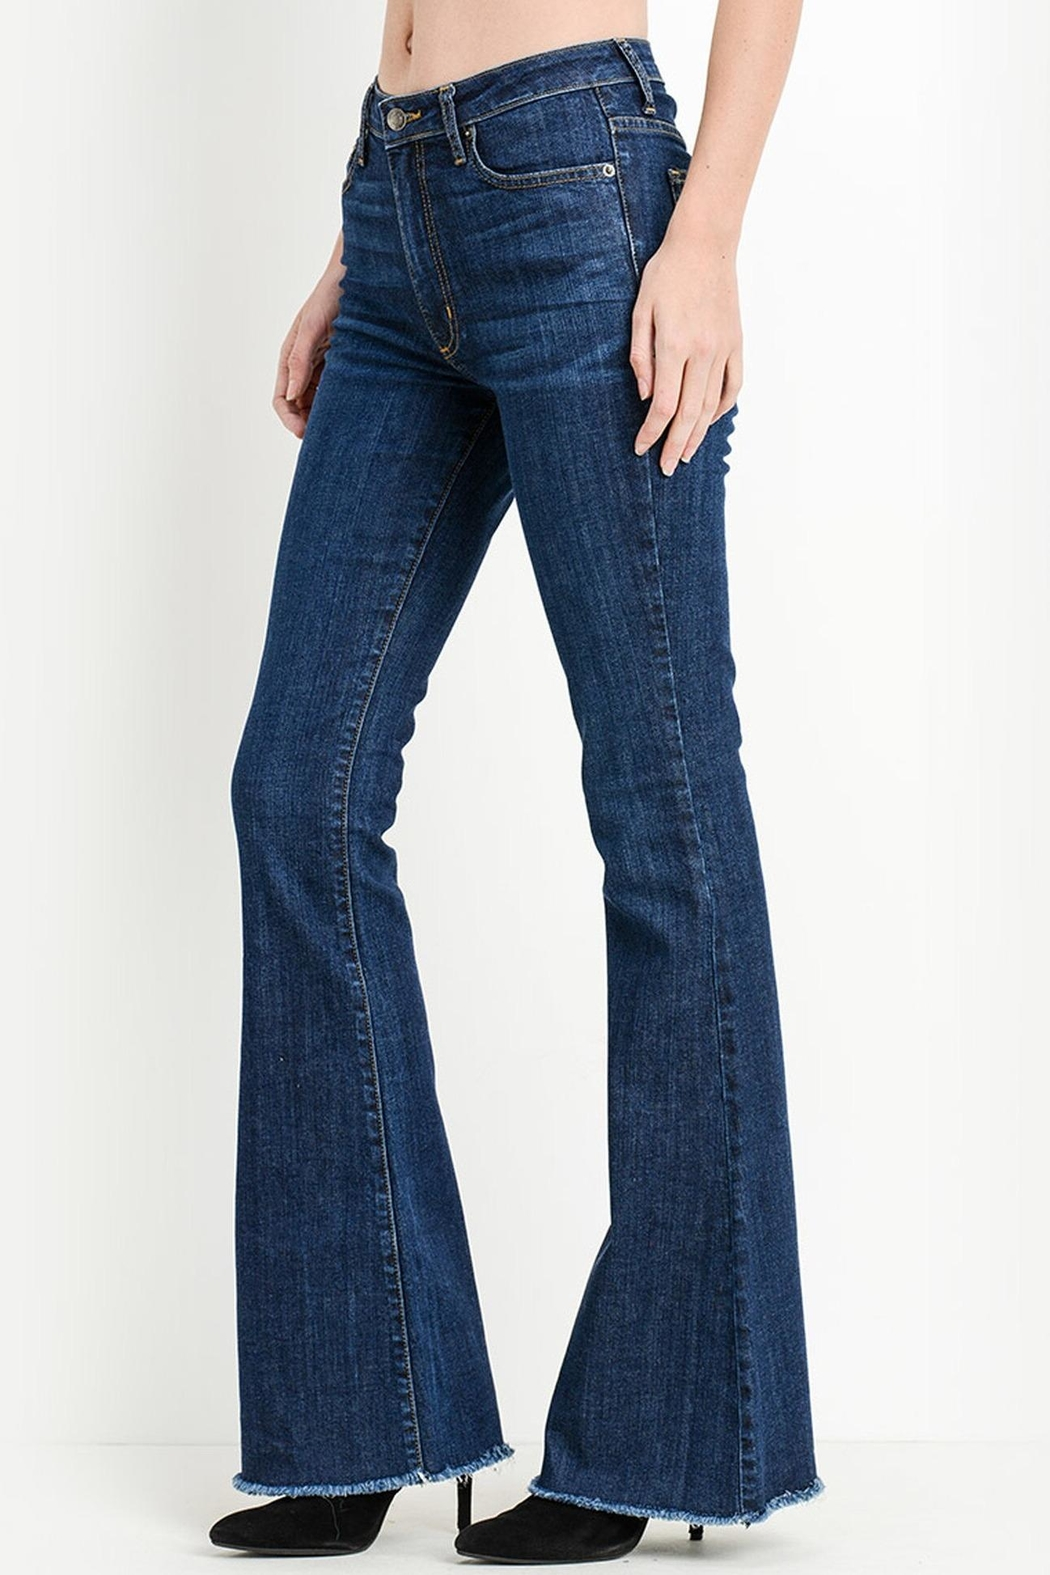 The Lovet Shop Bella Flare Jeans - Main Image